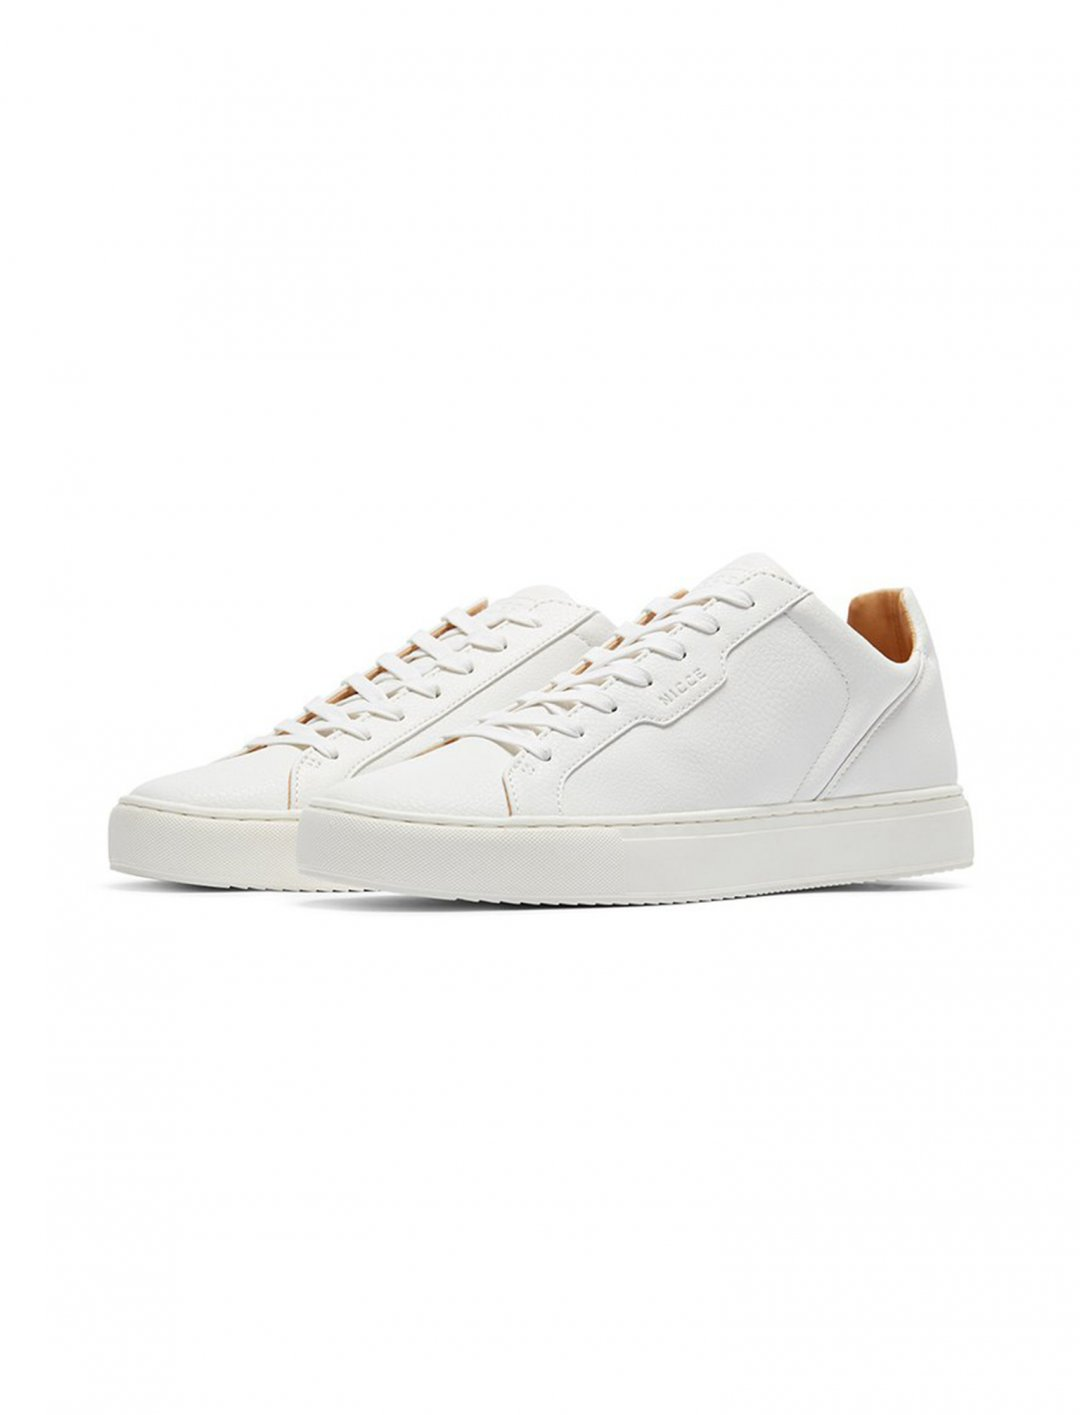 "Nicce Trainers {""id"":12,""product_section_id"":1,""name"":""Shoes"",""order"":12}  Nicce London"